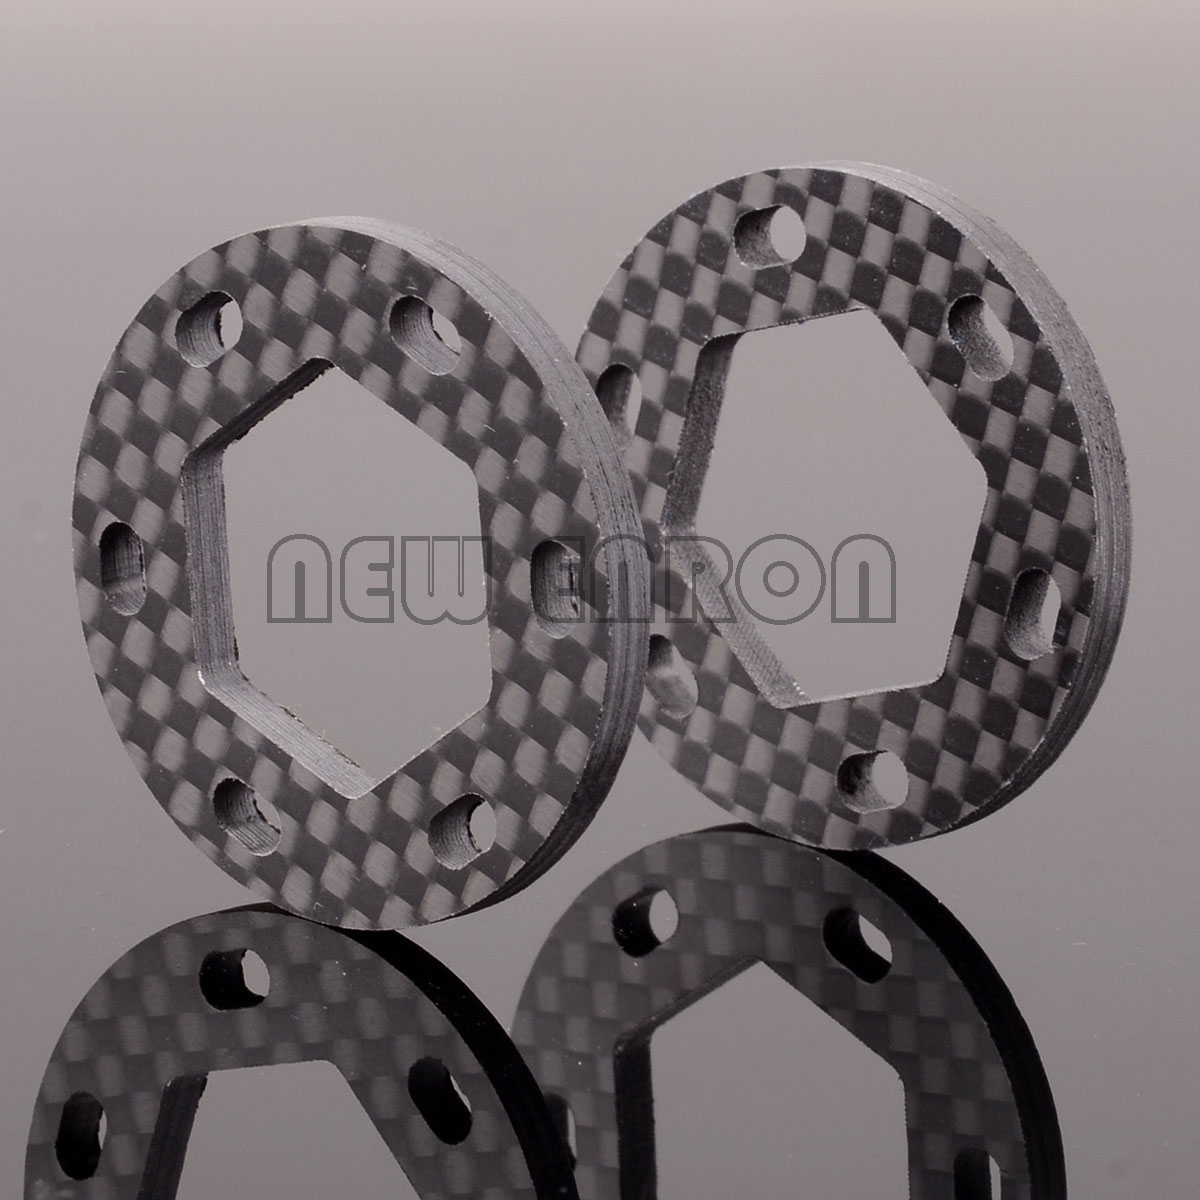 NEW ENRON 2PCS Carbon Fiber DUAL FIBERGLASS BRAKE DISK 19x35x3mm 87050 HPI SAX87055 SAVAGE X 4.6 5.9